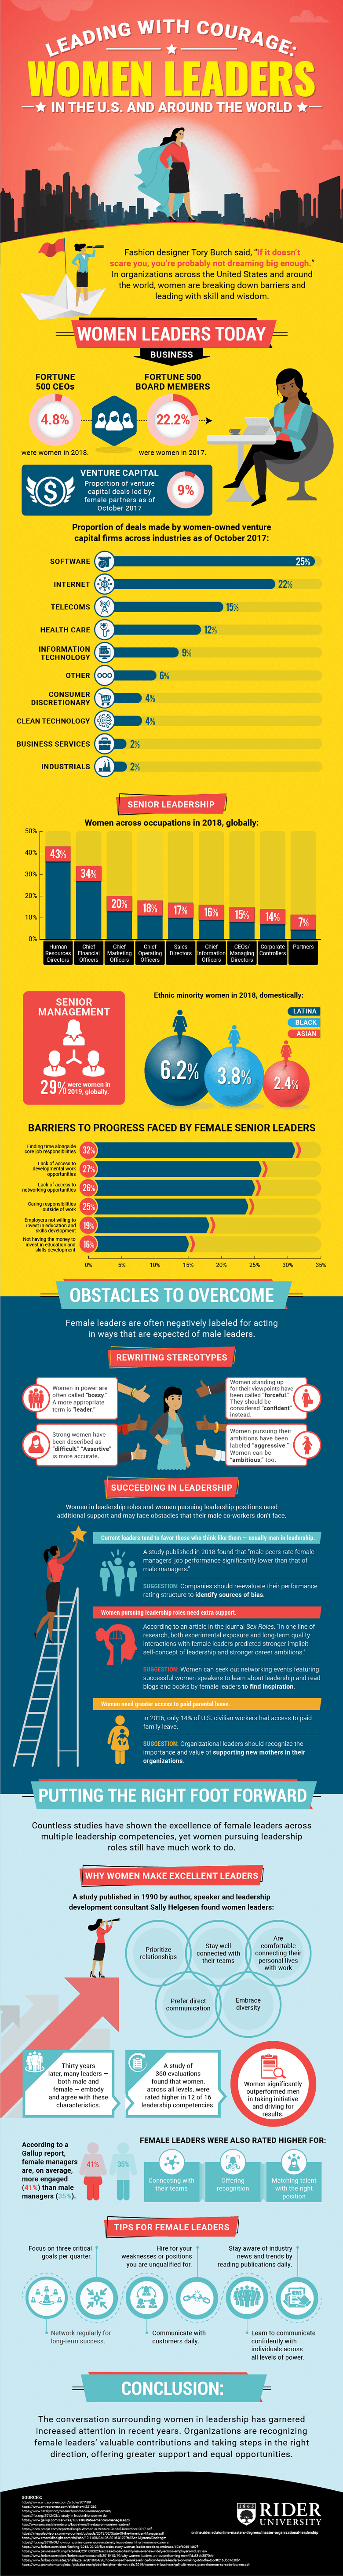 How women leaders can overcome the barriers that may hinder their path to professional leadership.